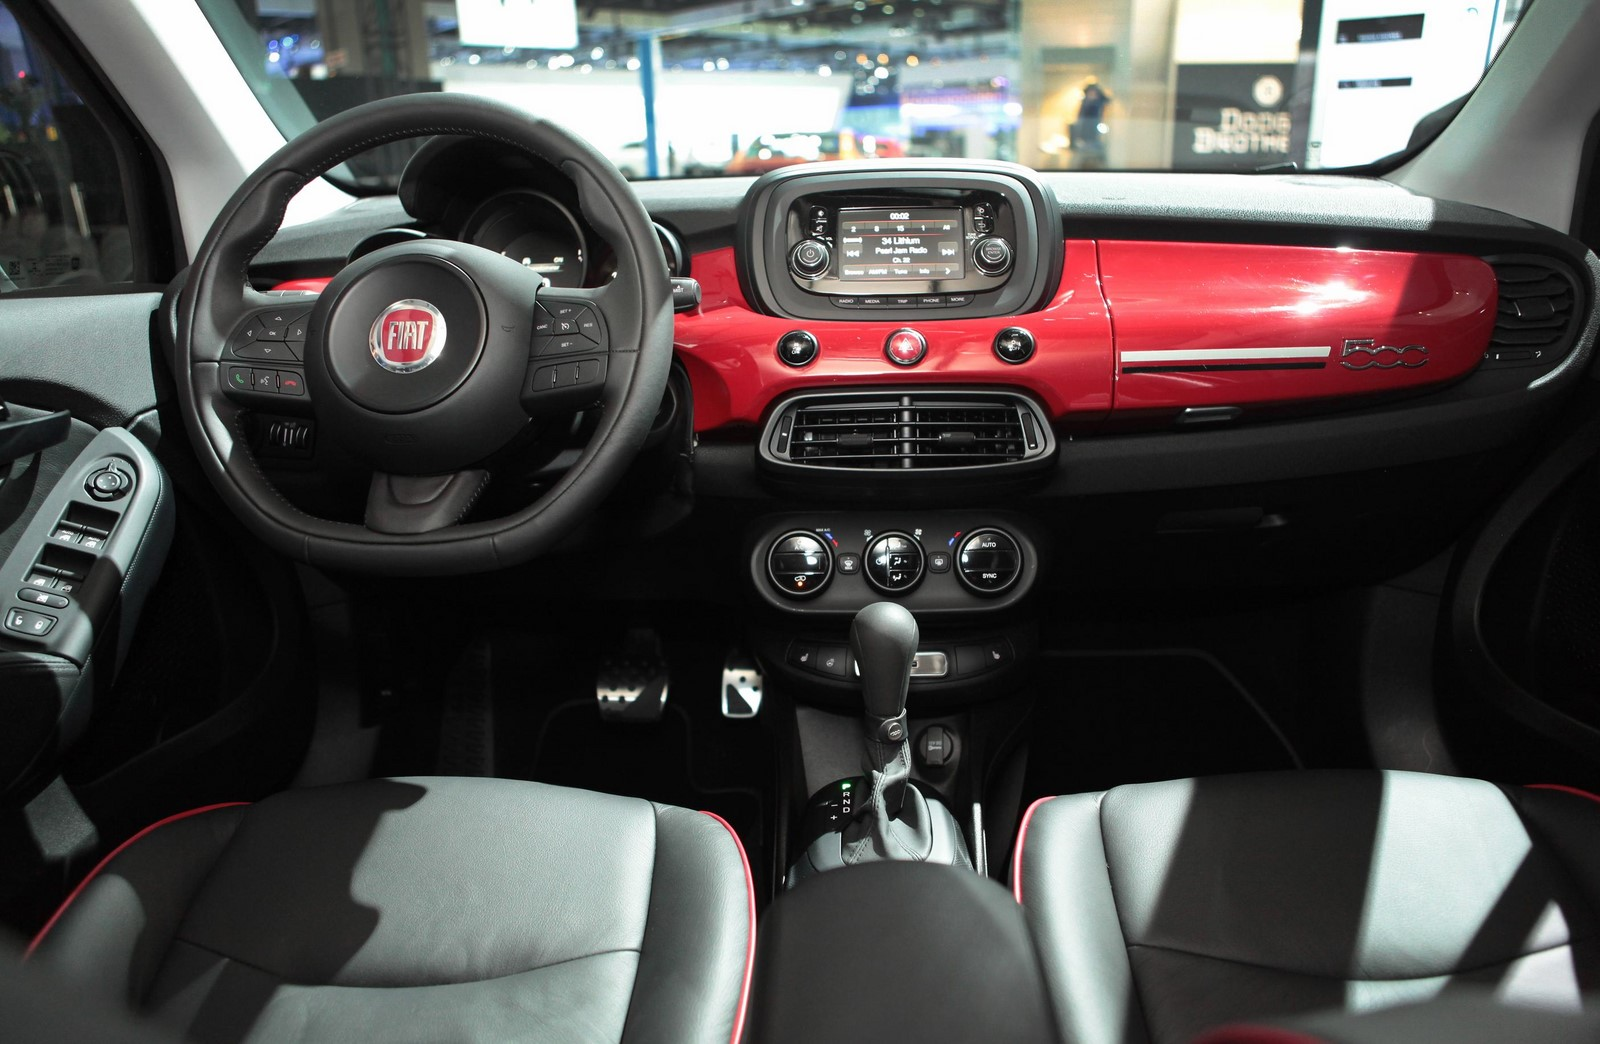 amazing-design-of-the-black-and-red-dash-ideas-with-balck-steering-wheels-as-the-fiat-500x-2015-interior